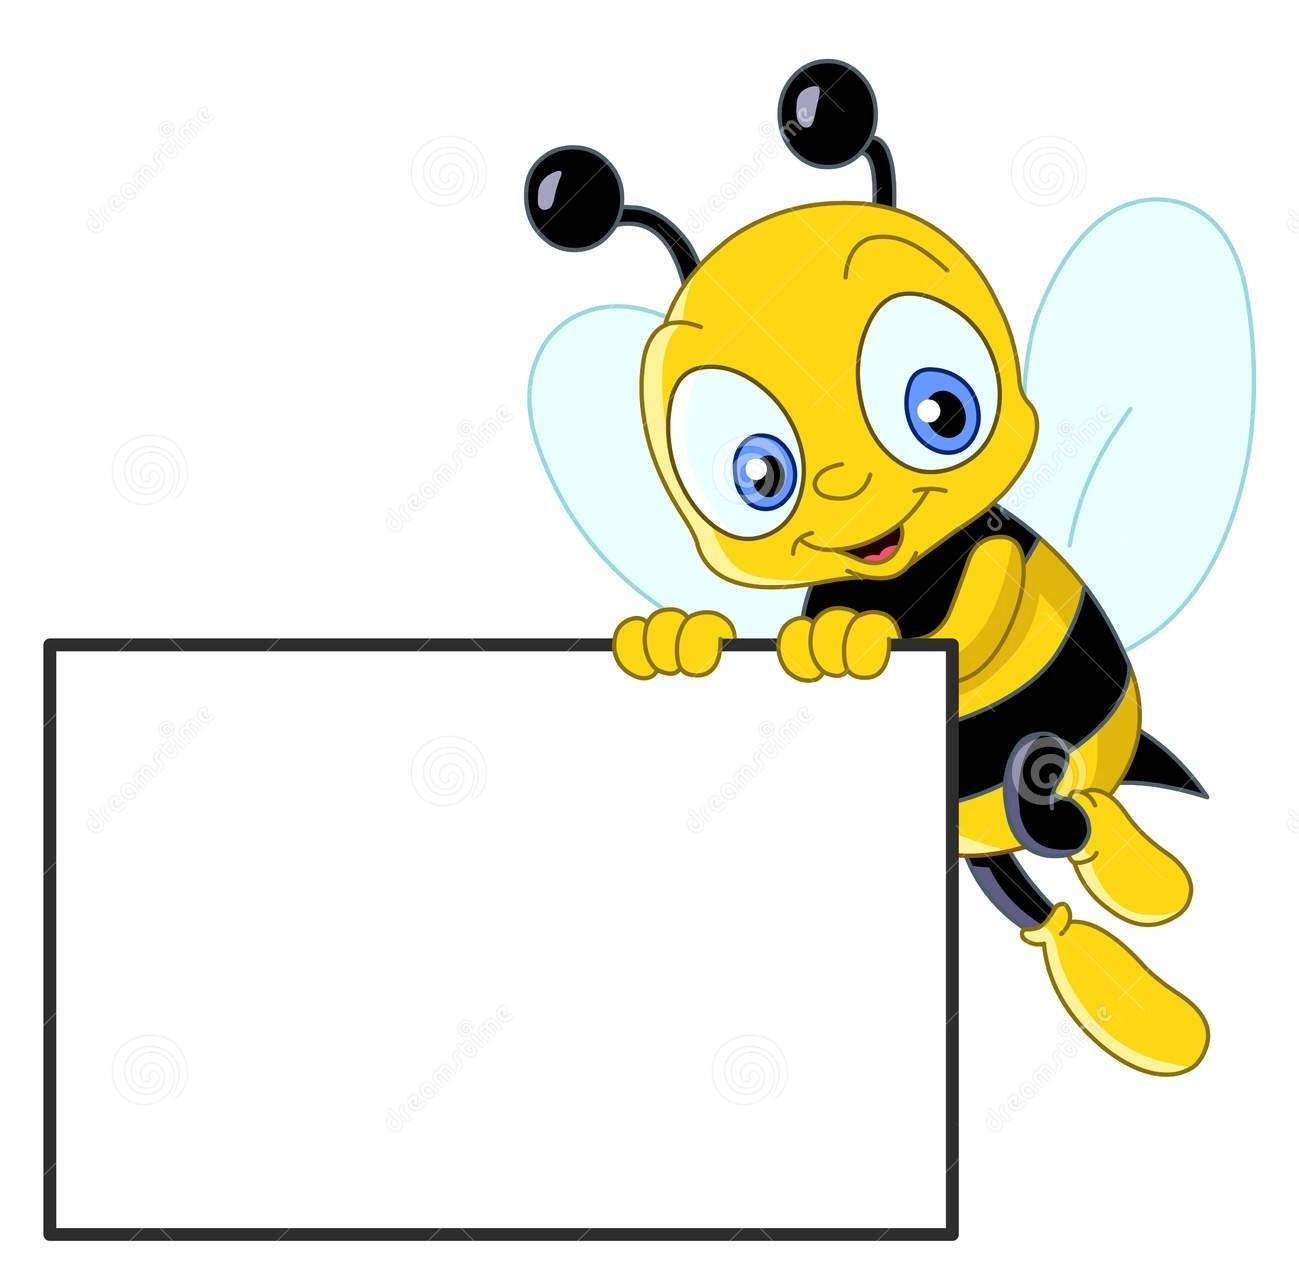 Dreamstime com bee frame. Bees clipart borders